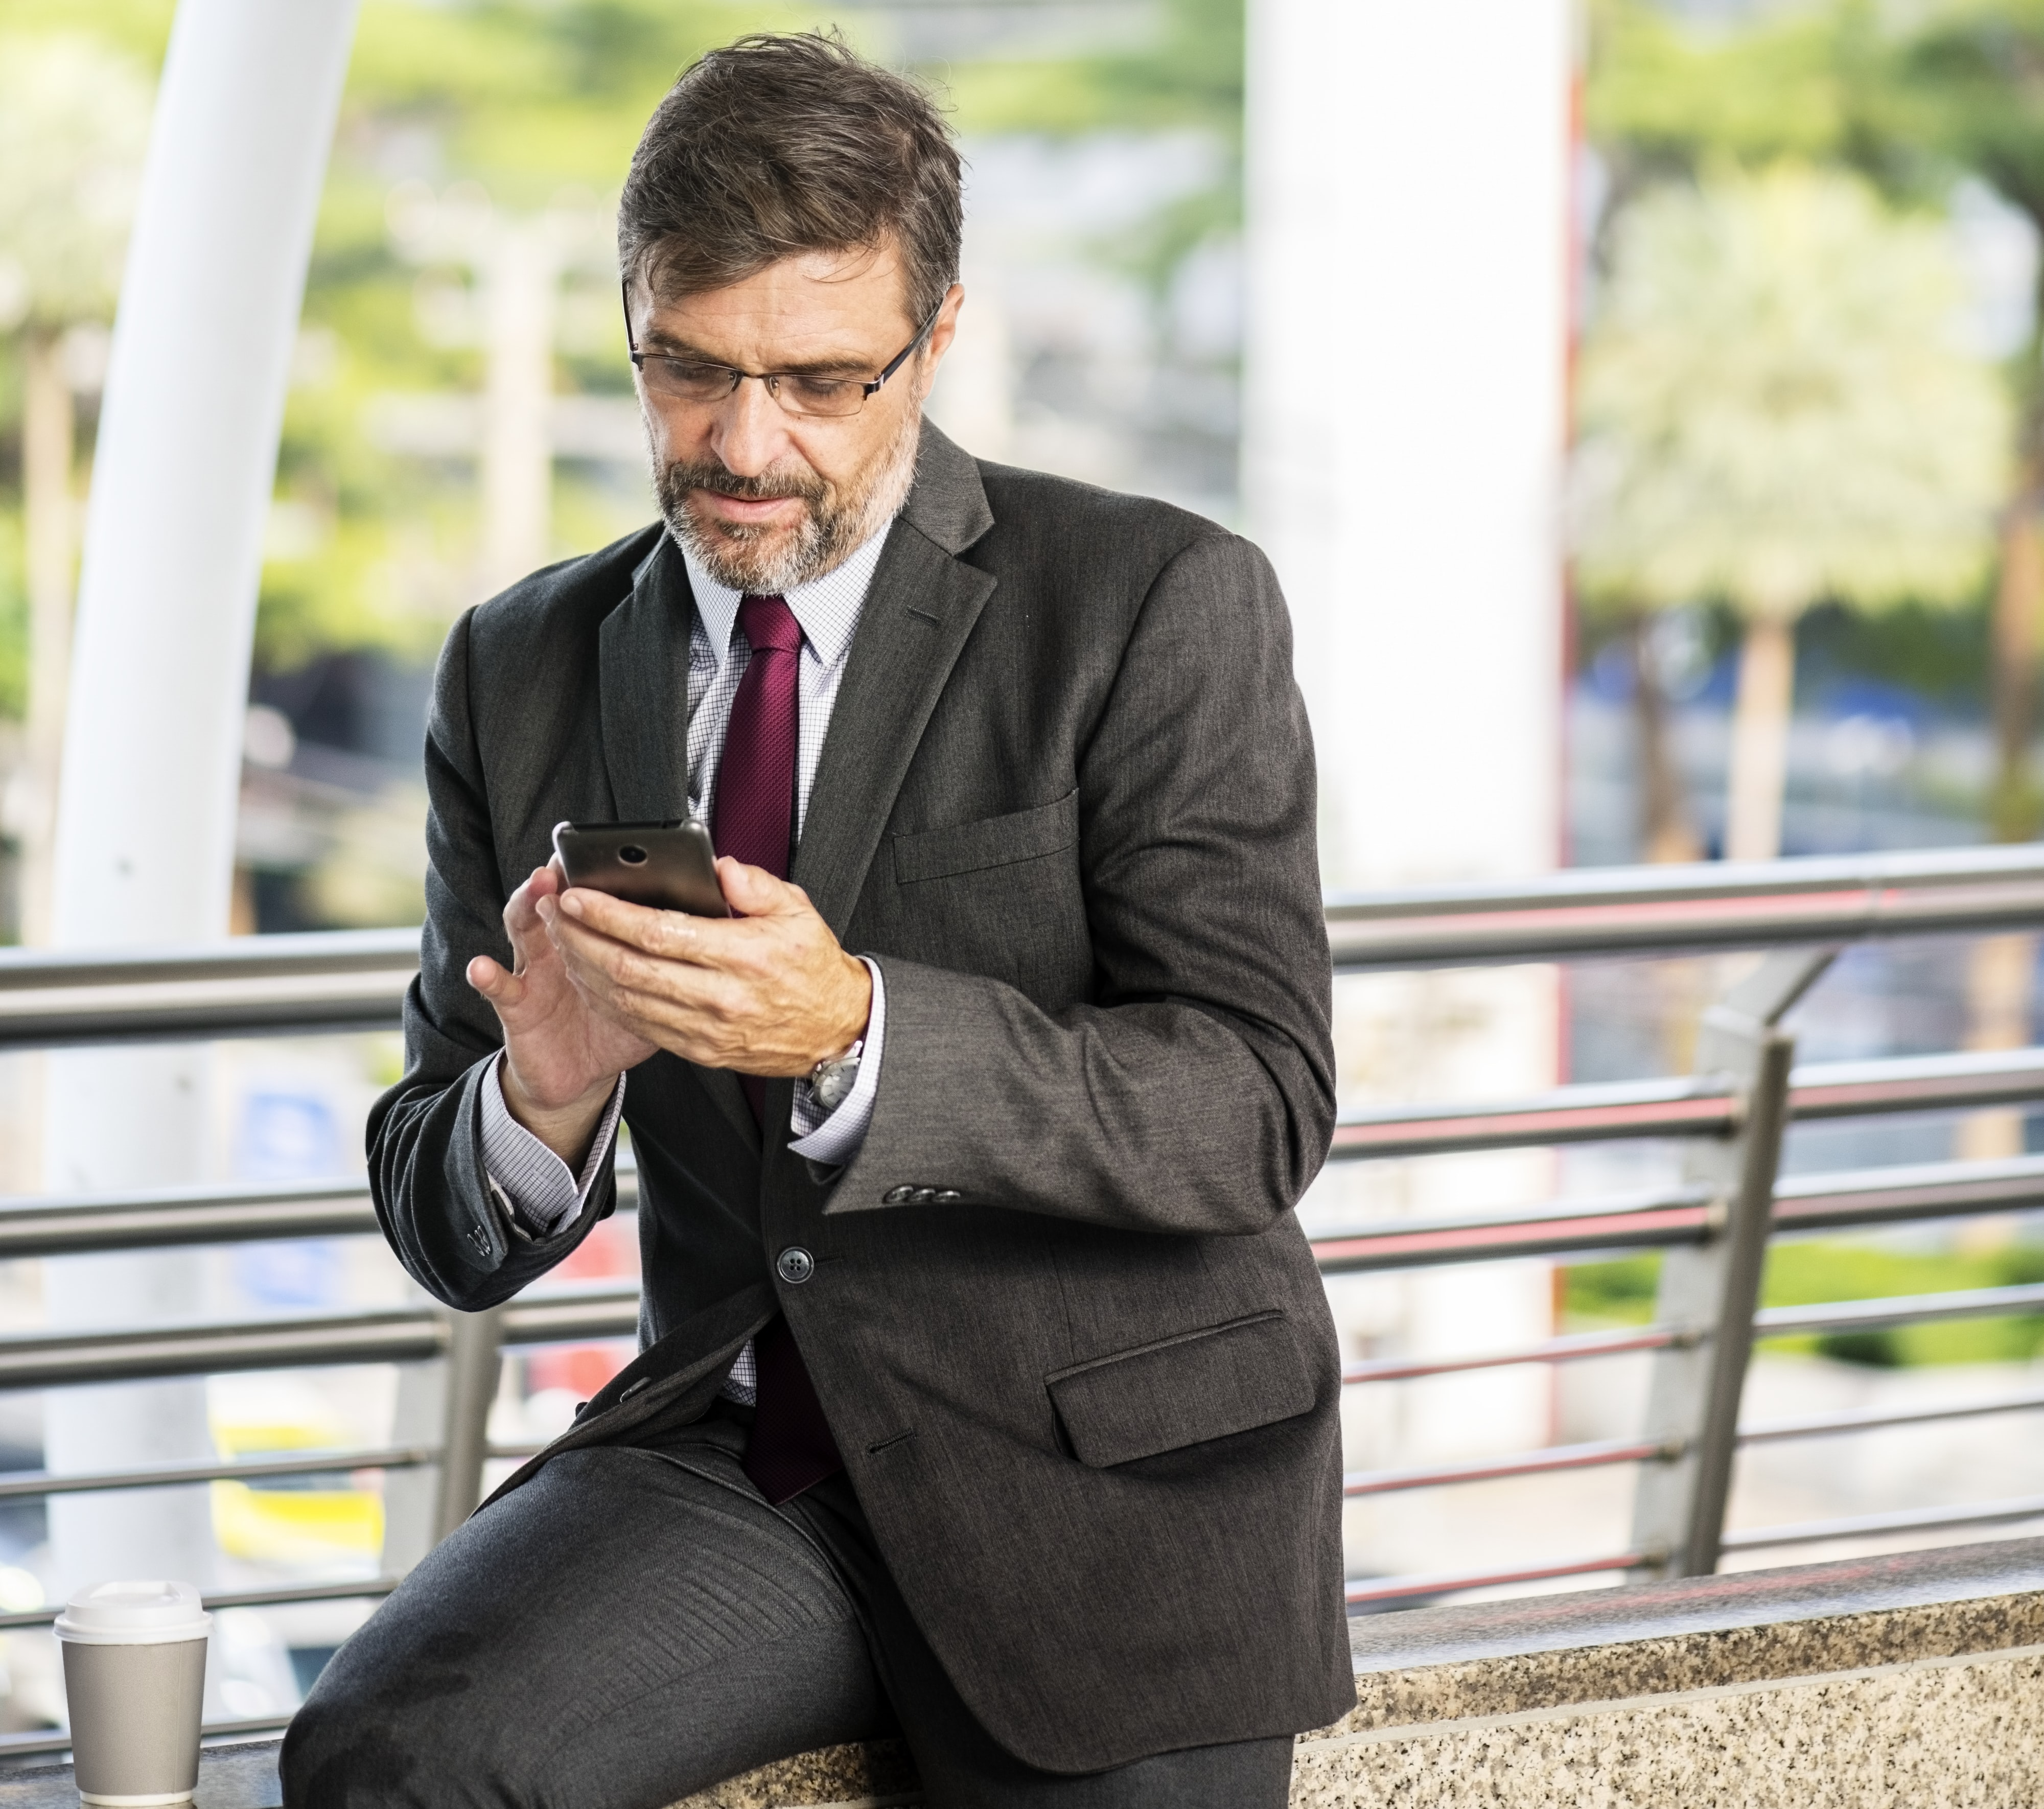 man in black formal suit holding black smartphone